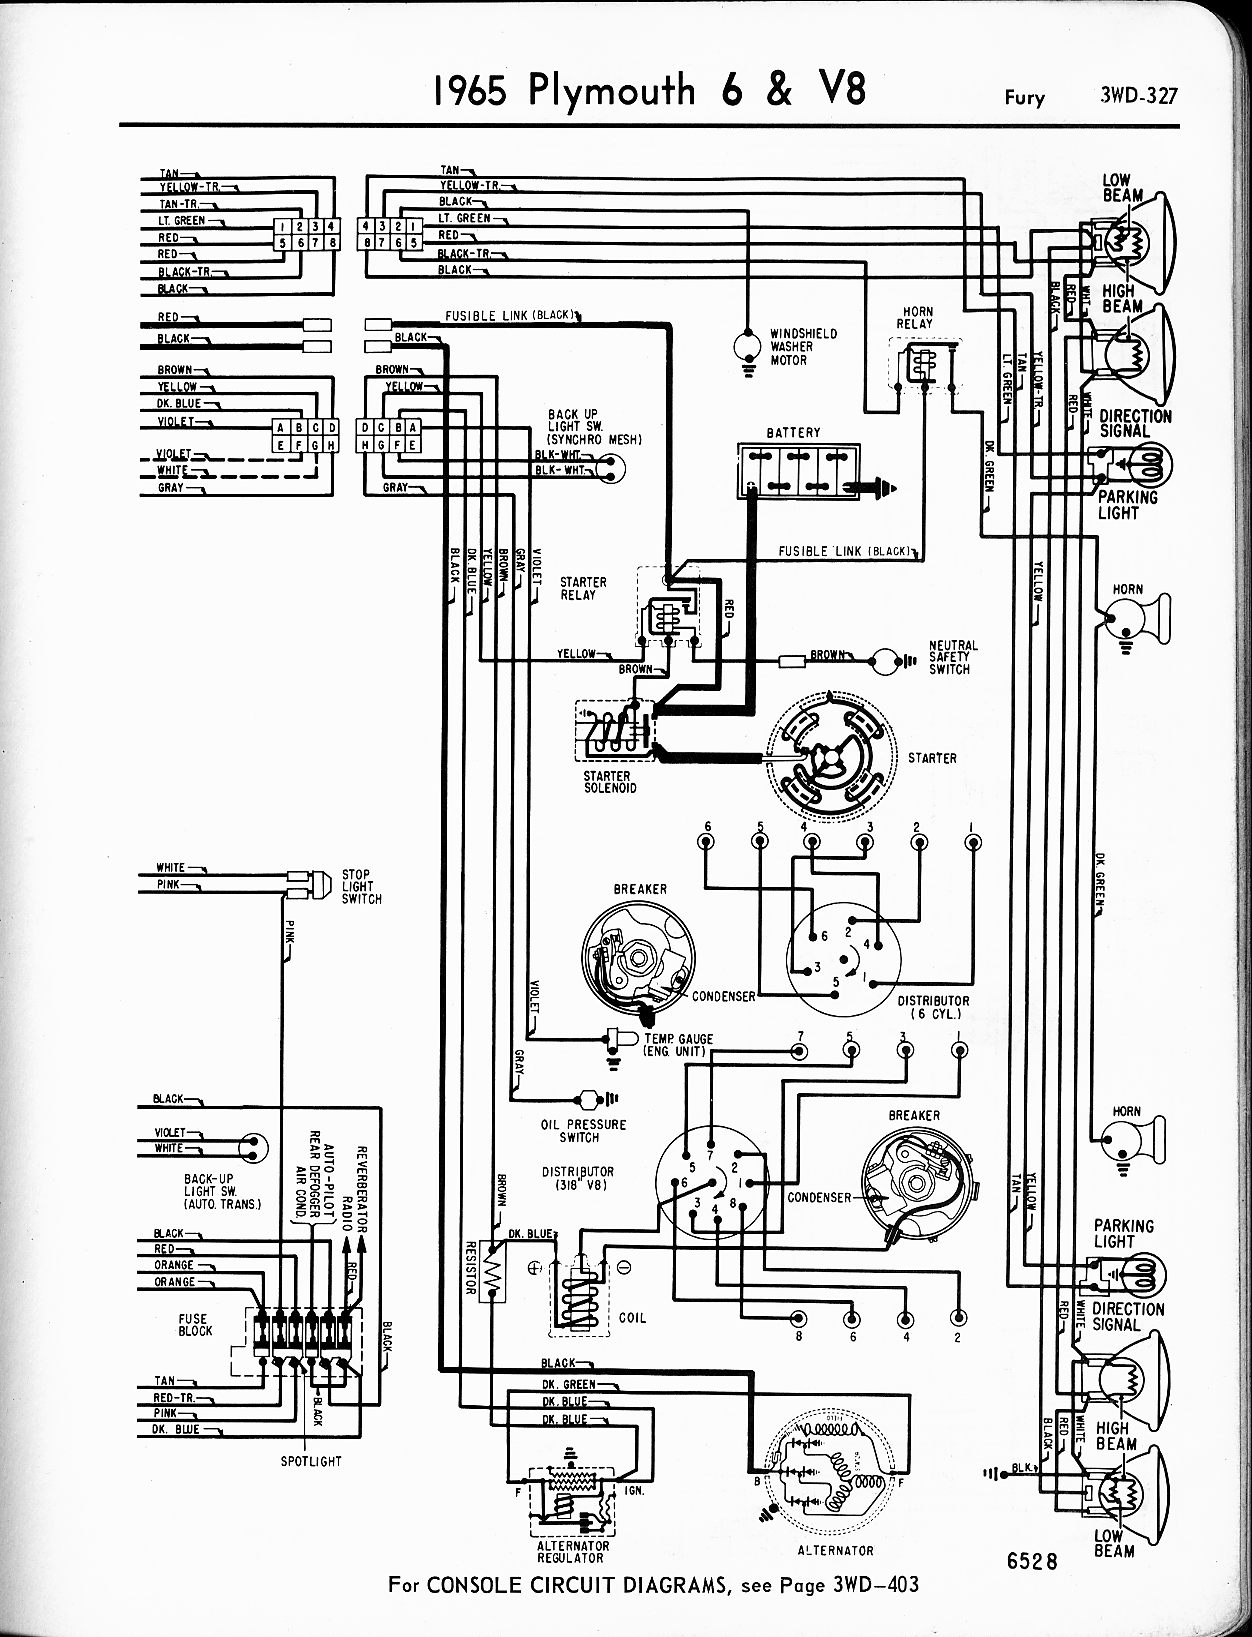 1966 dodge coronet wiring diagram online wiring diagram1966 dodge coronet wiring diagram wiring diagram1970 dodge coronet wiring diagram wiring diagram1969 chevy wiring diagram